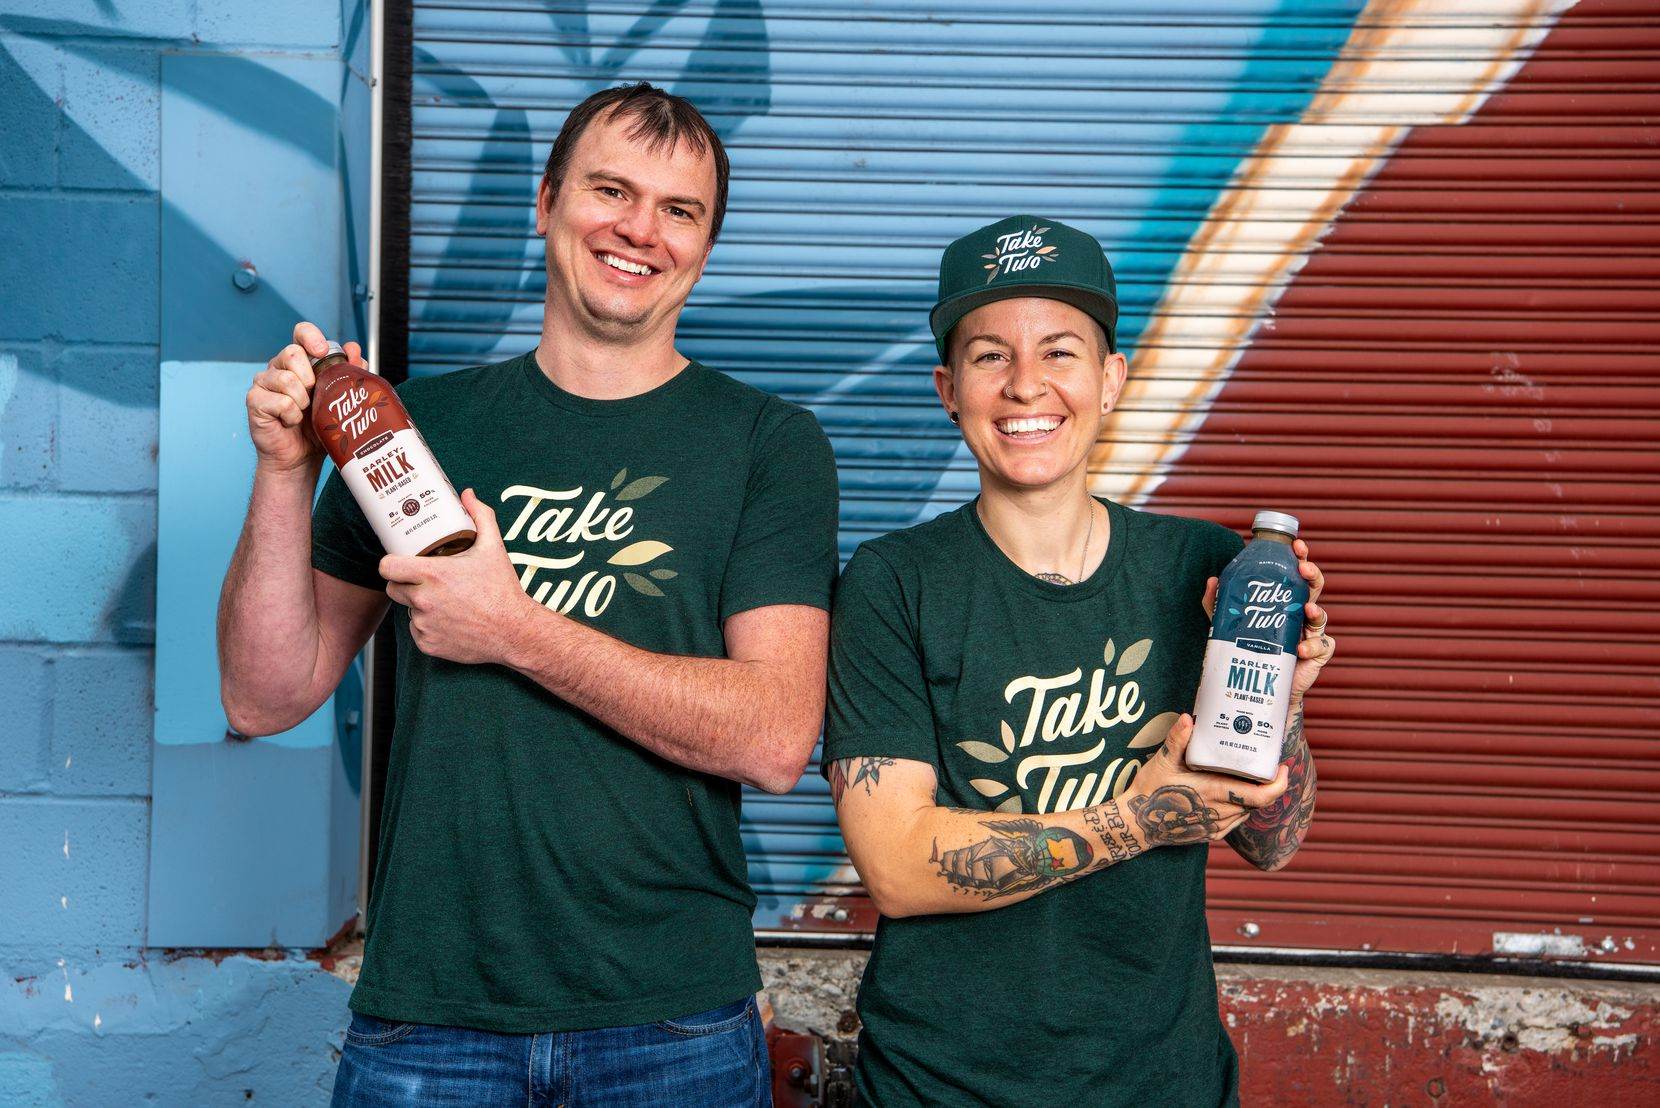 Take Two is a barleymilk made from spent beer grains.